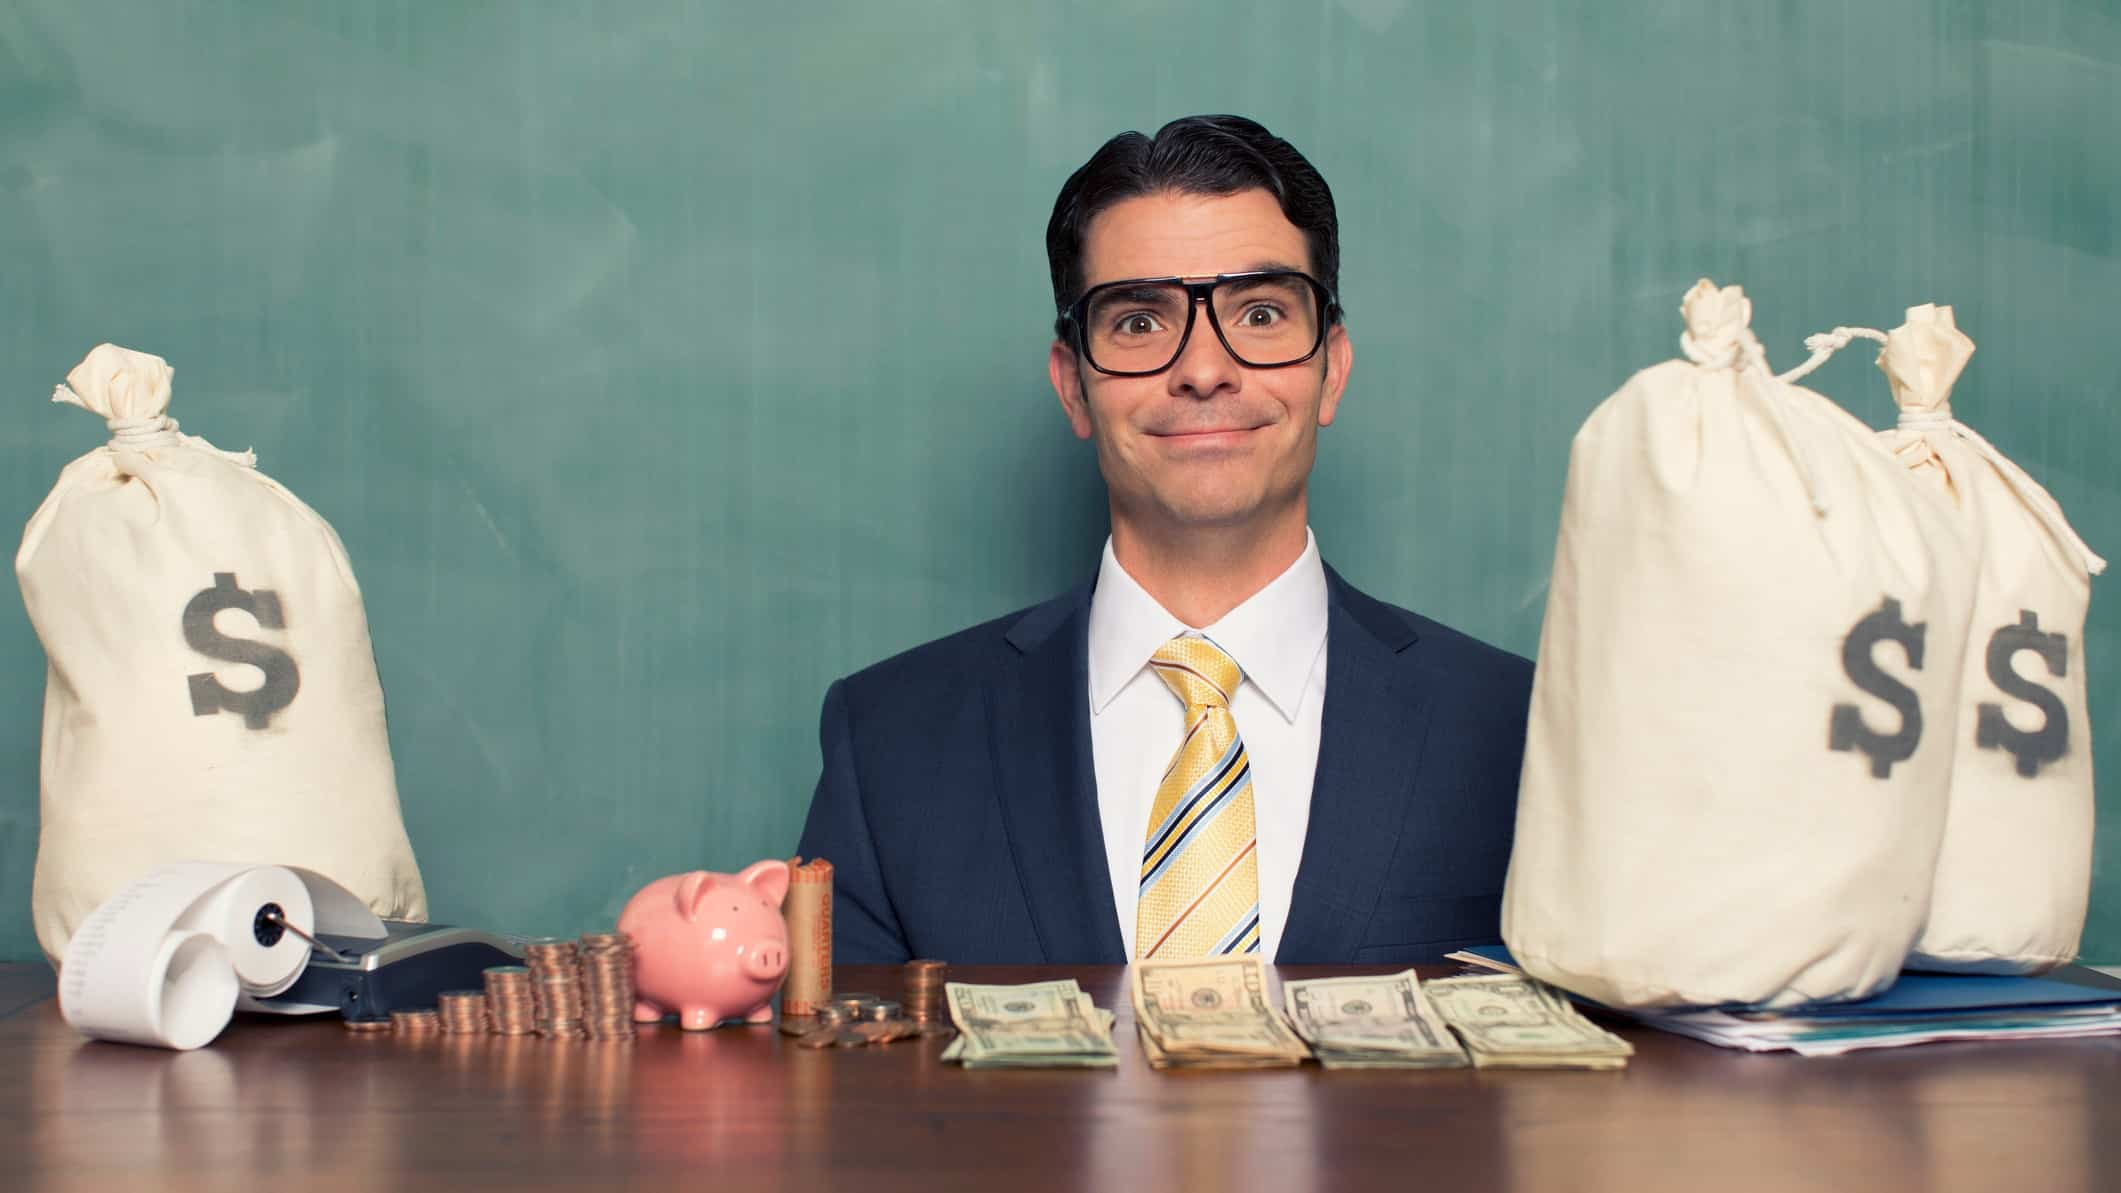 A smiling businessman sits at a desk with bags of mony, indicating a share price rise after funding has been approved